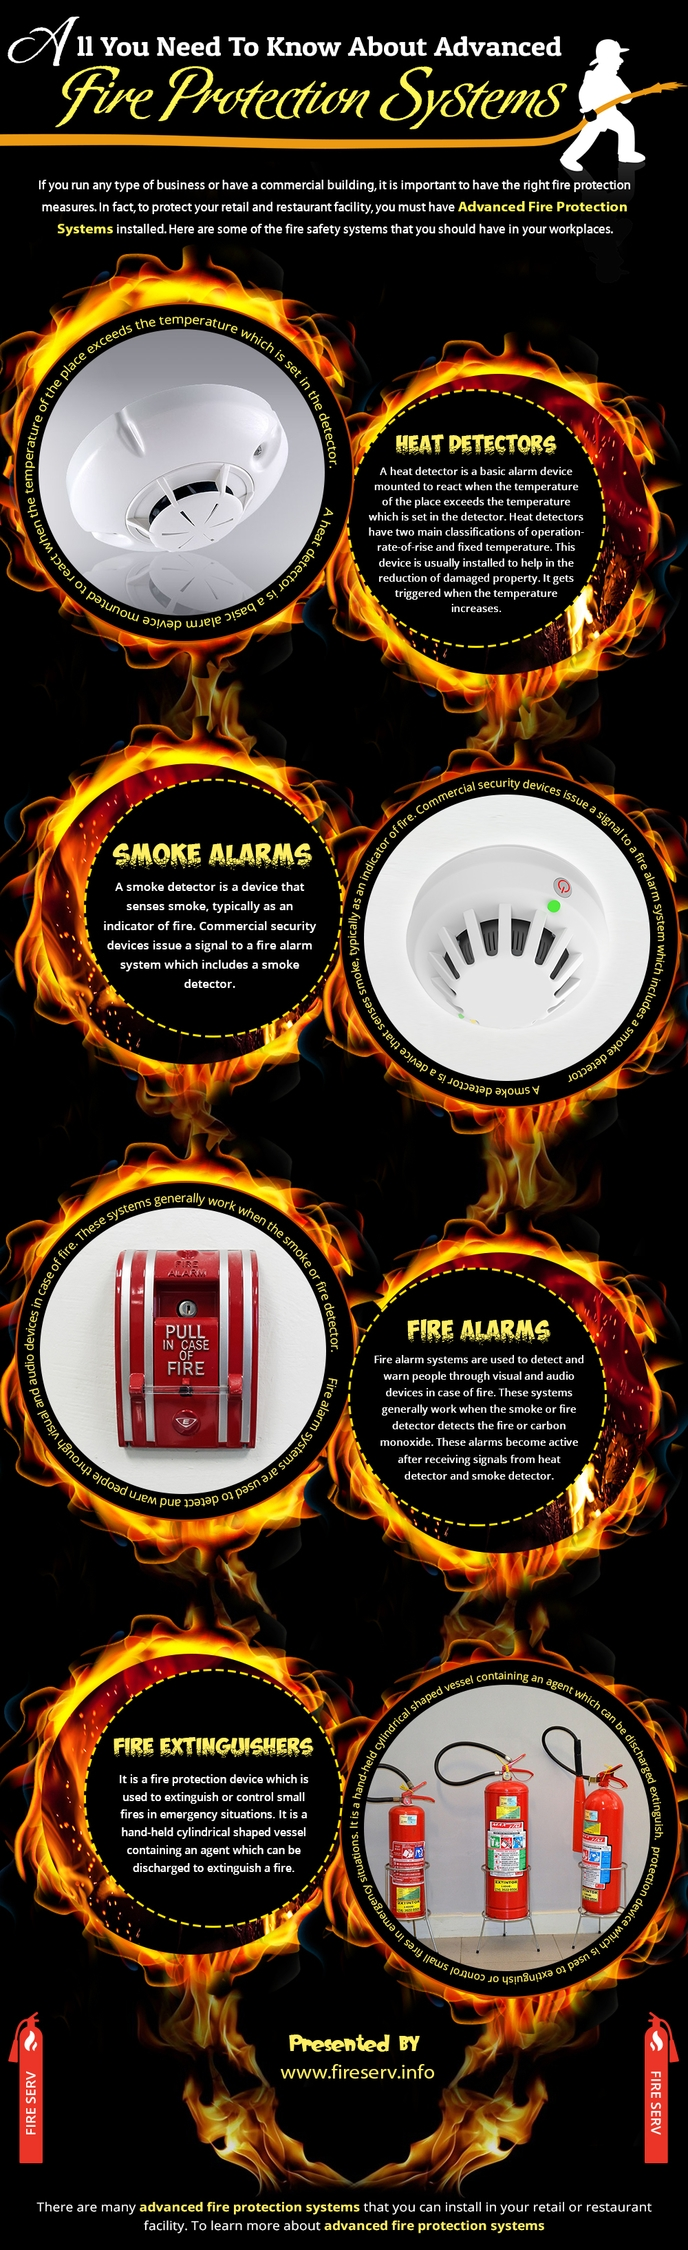 detail advanced fire protection - fireserv1 | ello